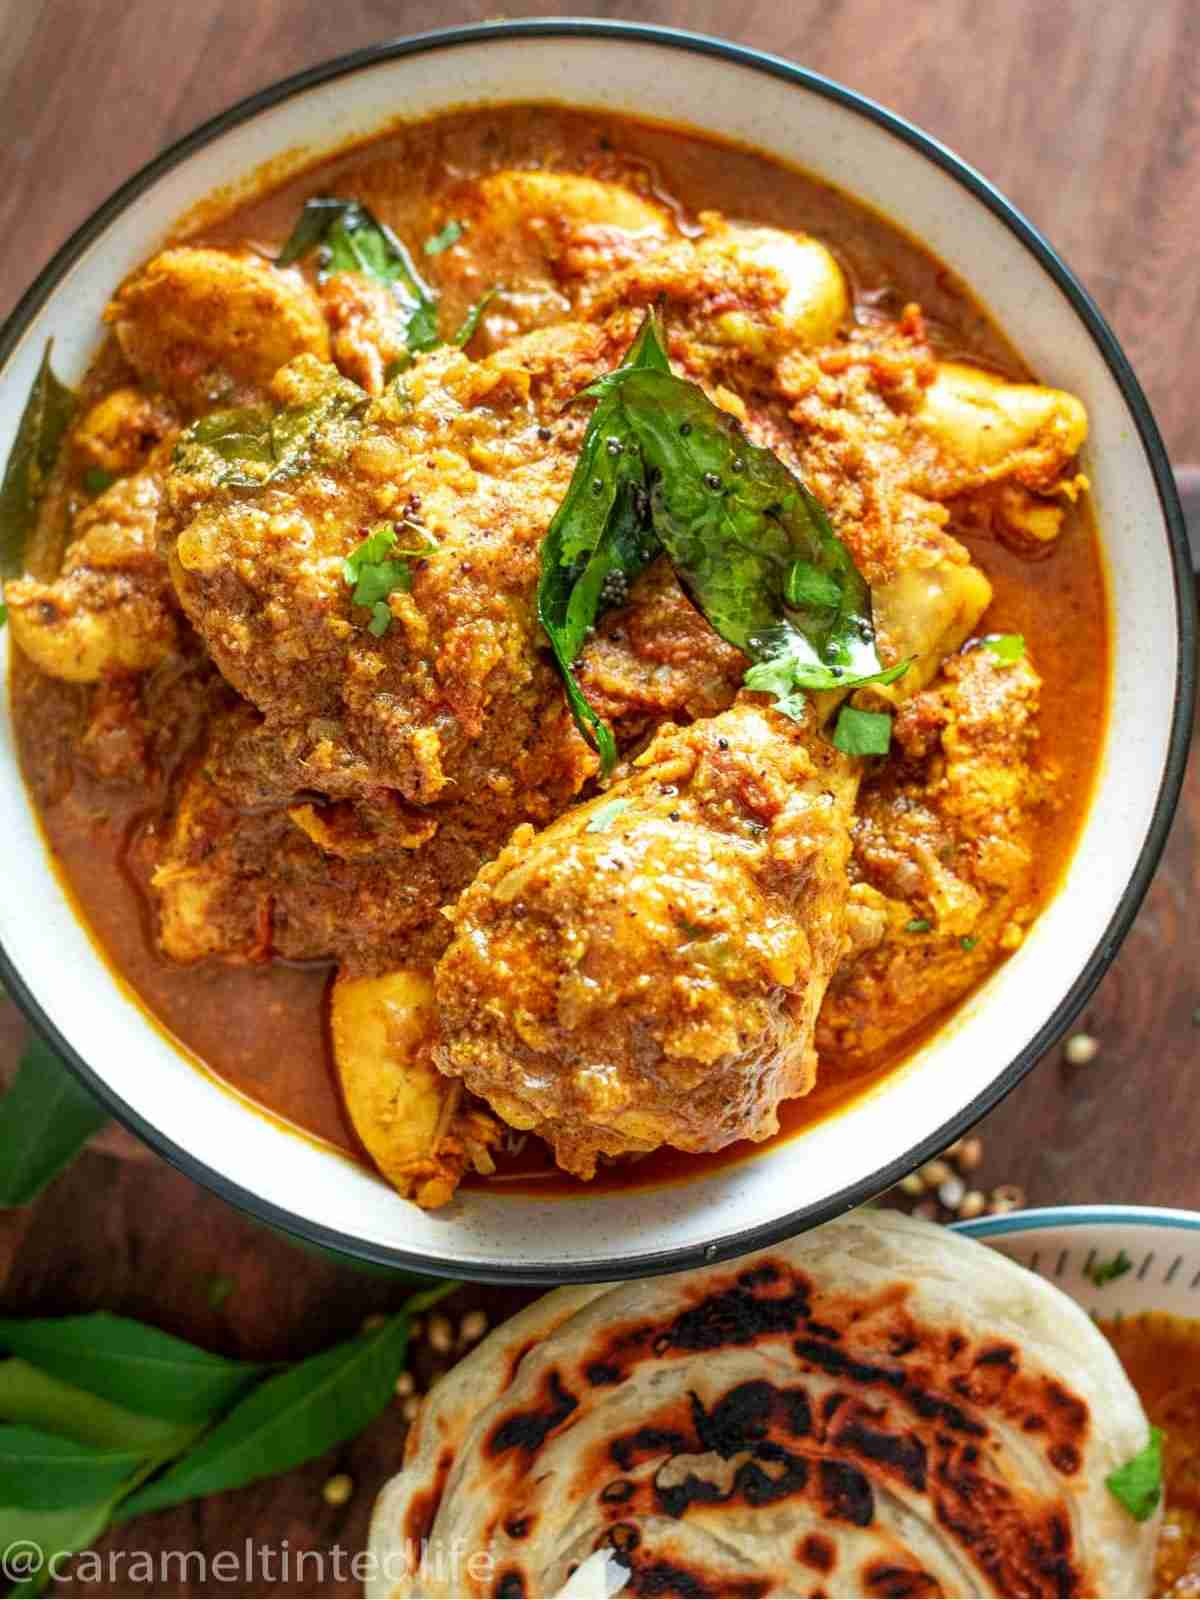 Chettinad chicken curry served in a bowl